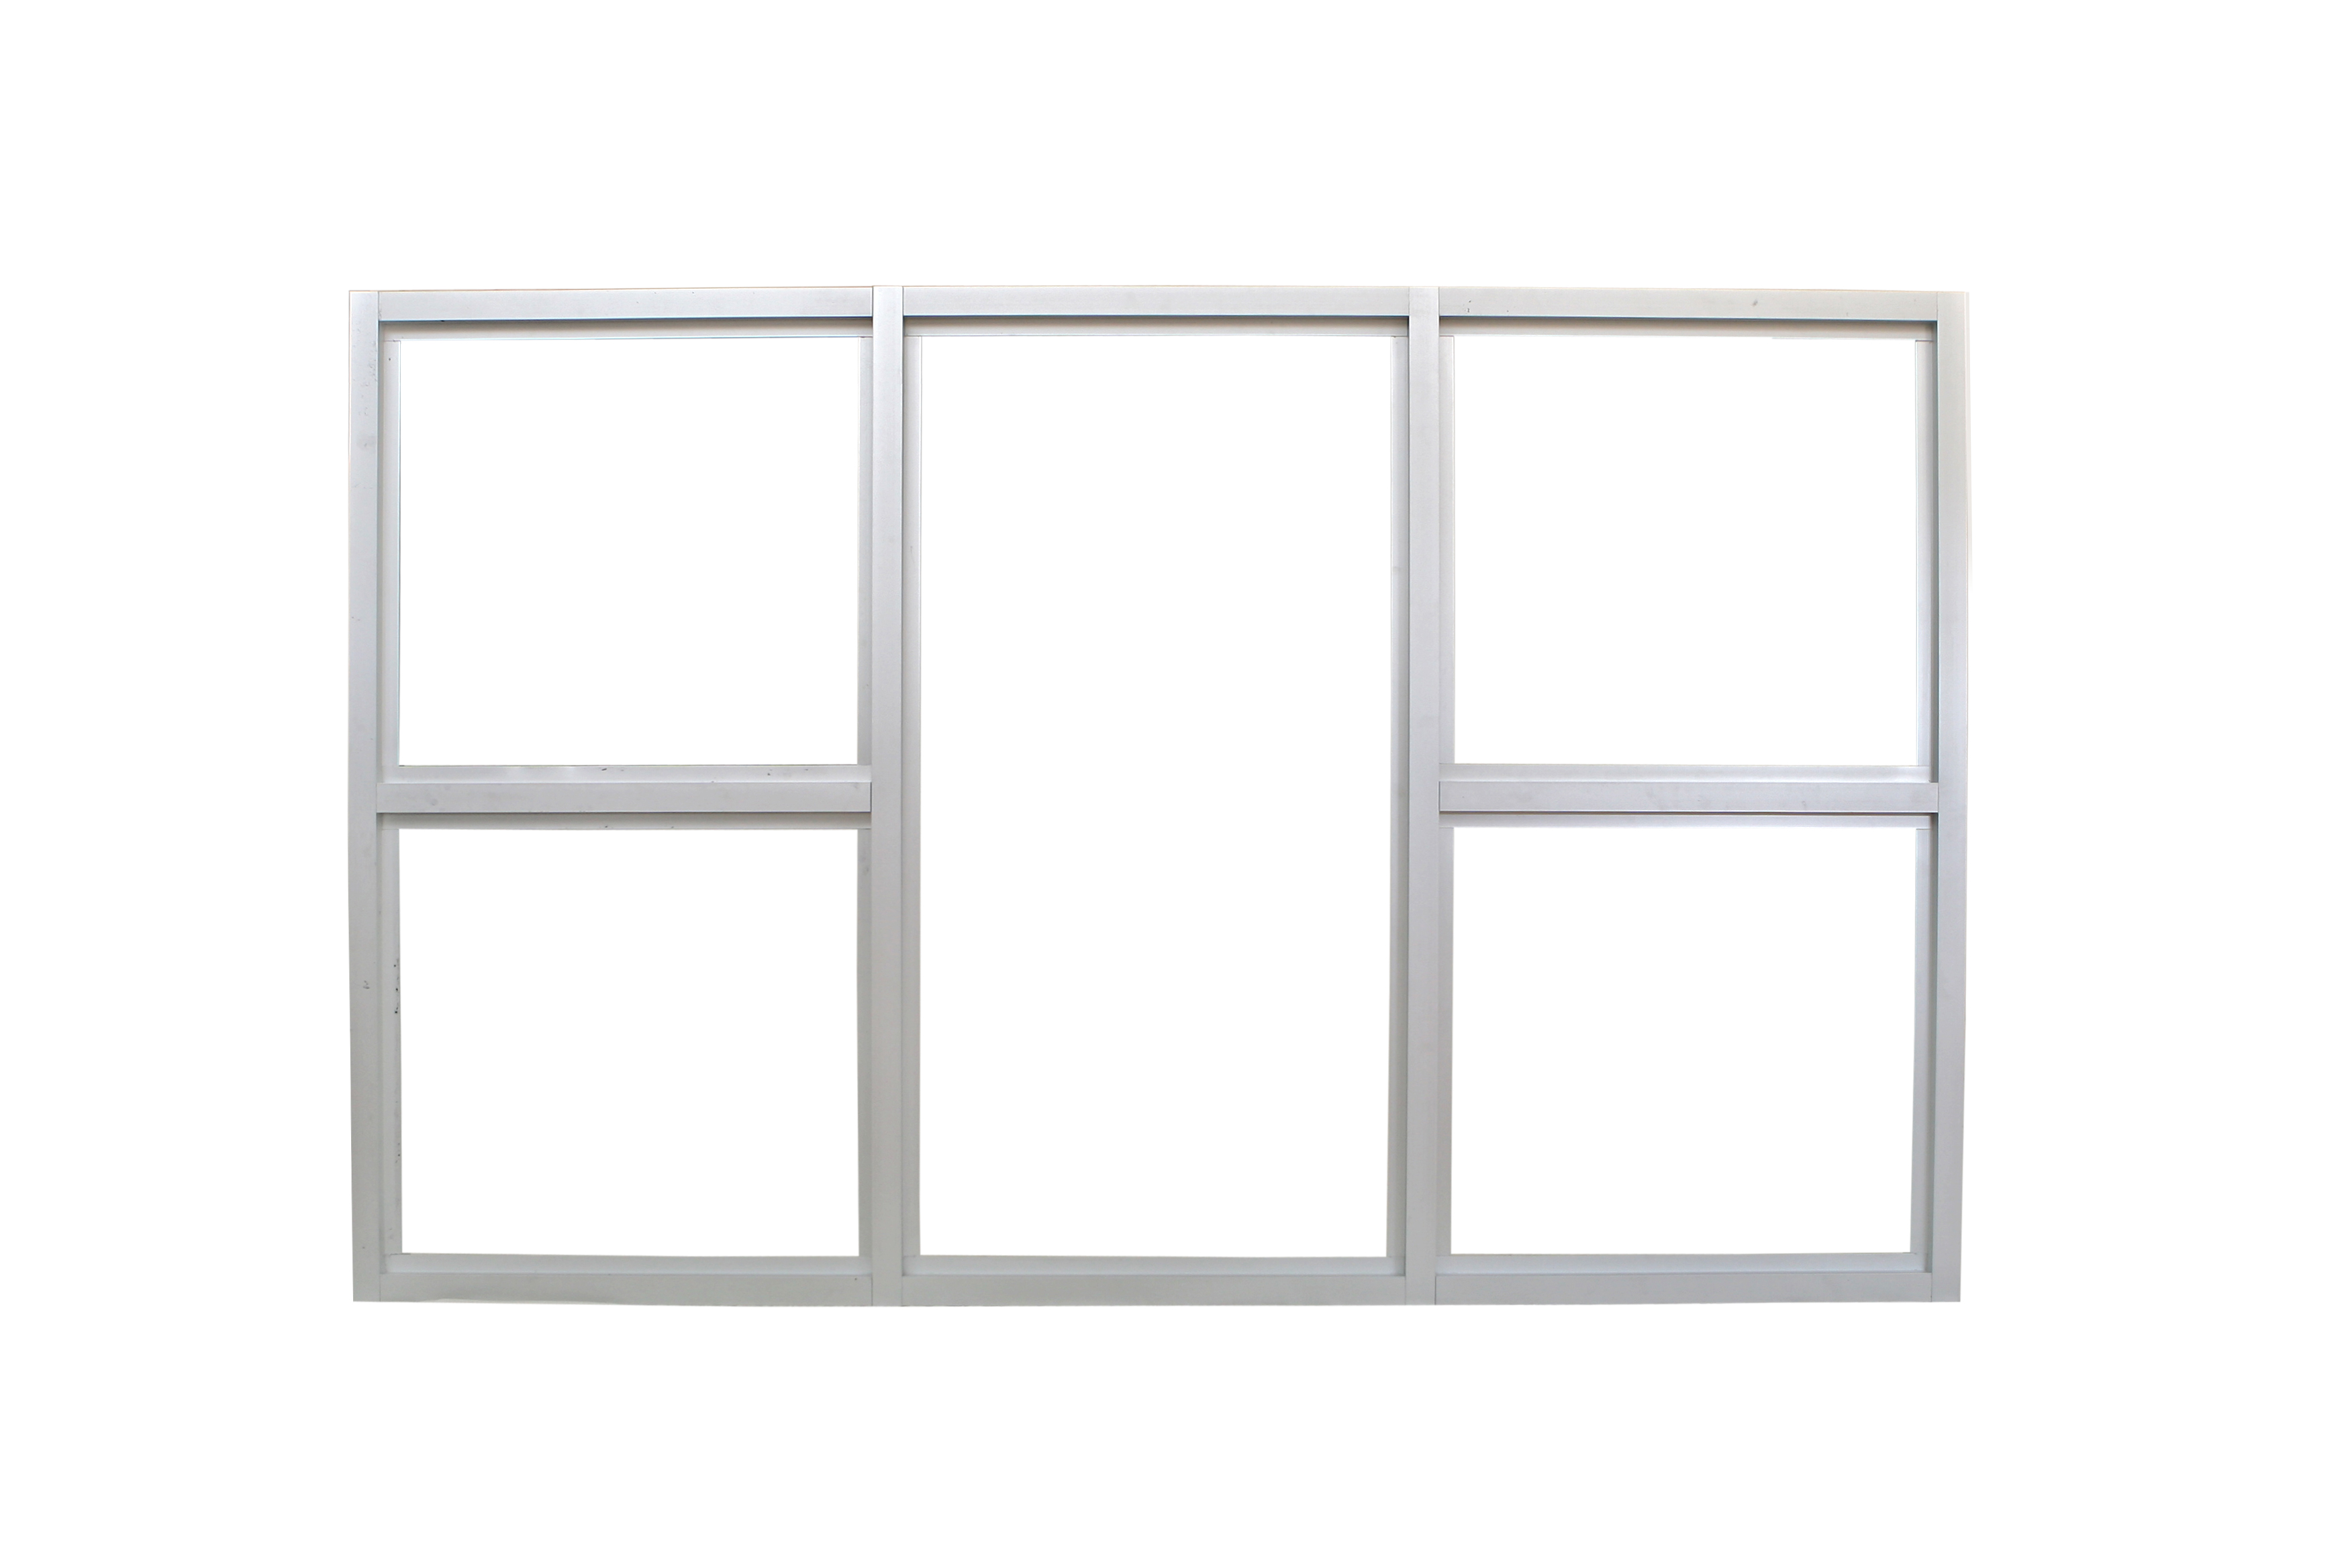 Window system ss3500 storefront picture impact resistant windows pgt